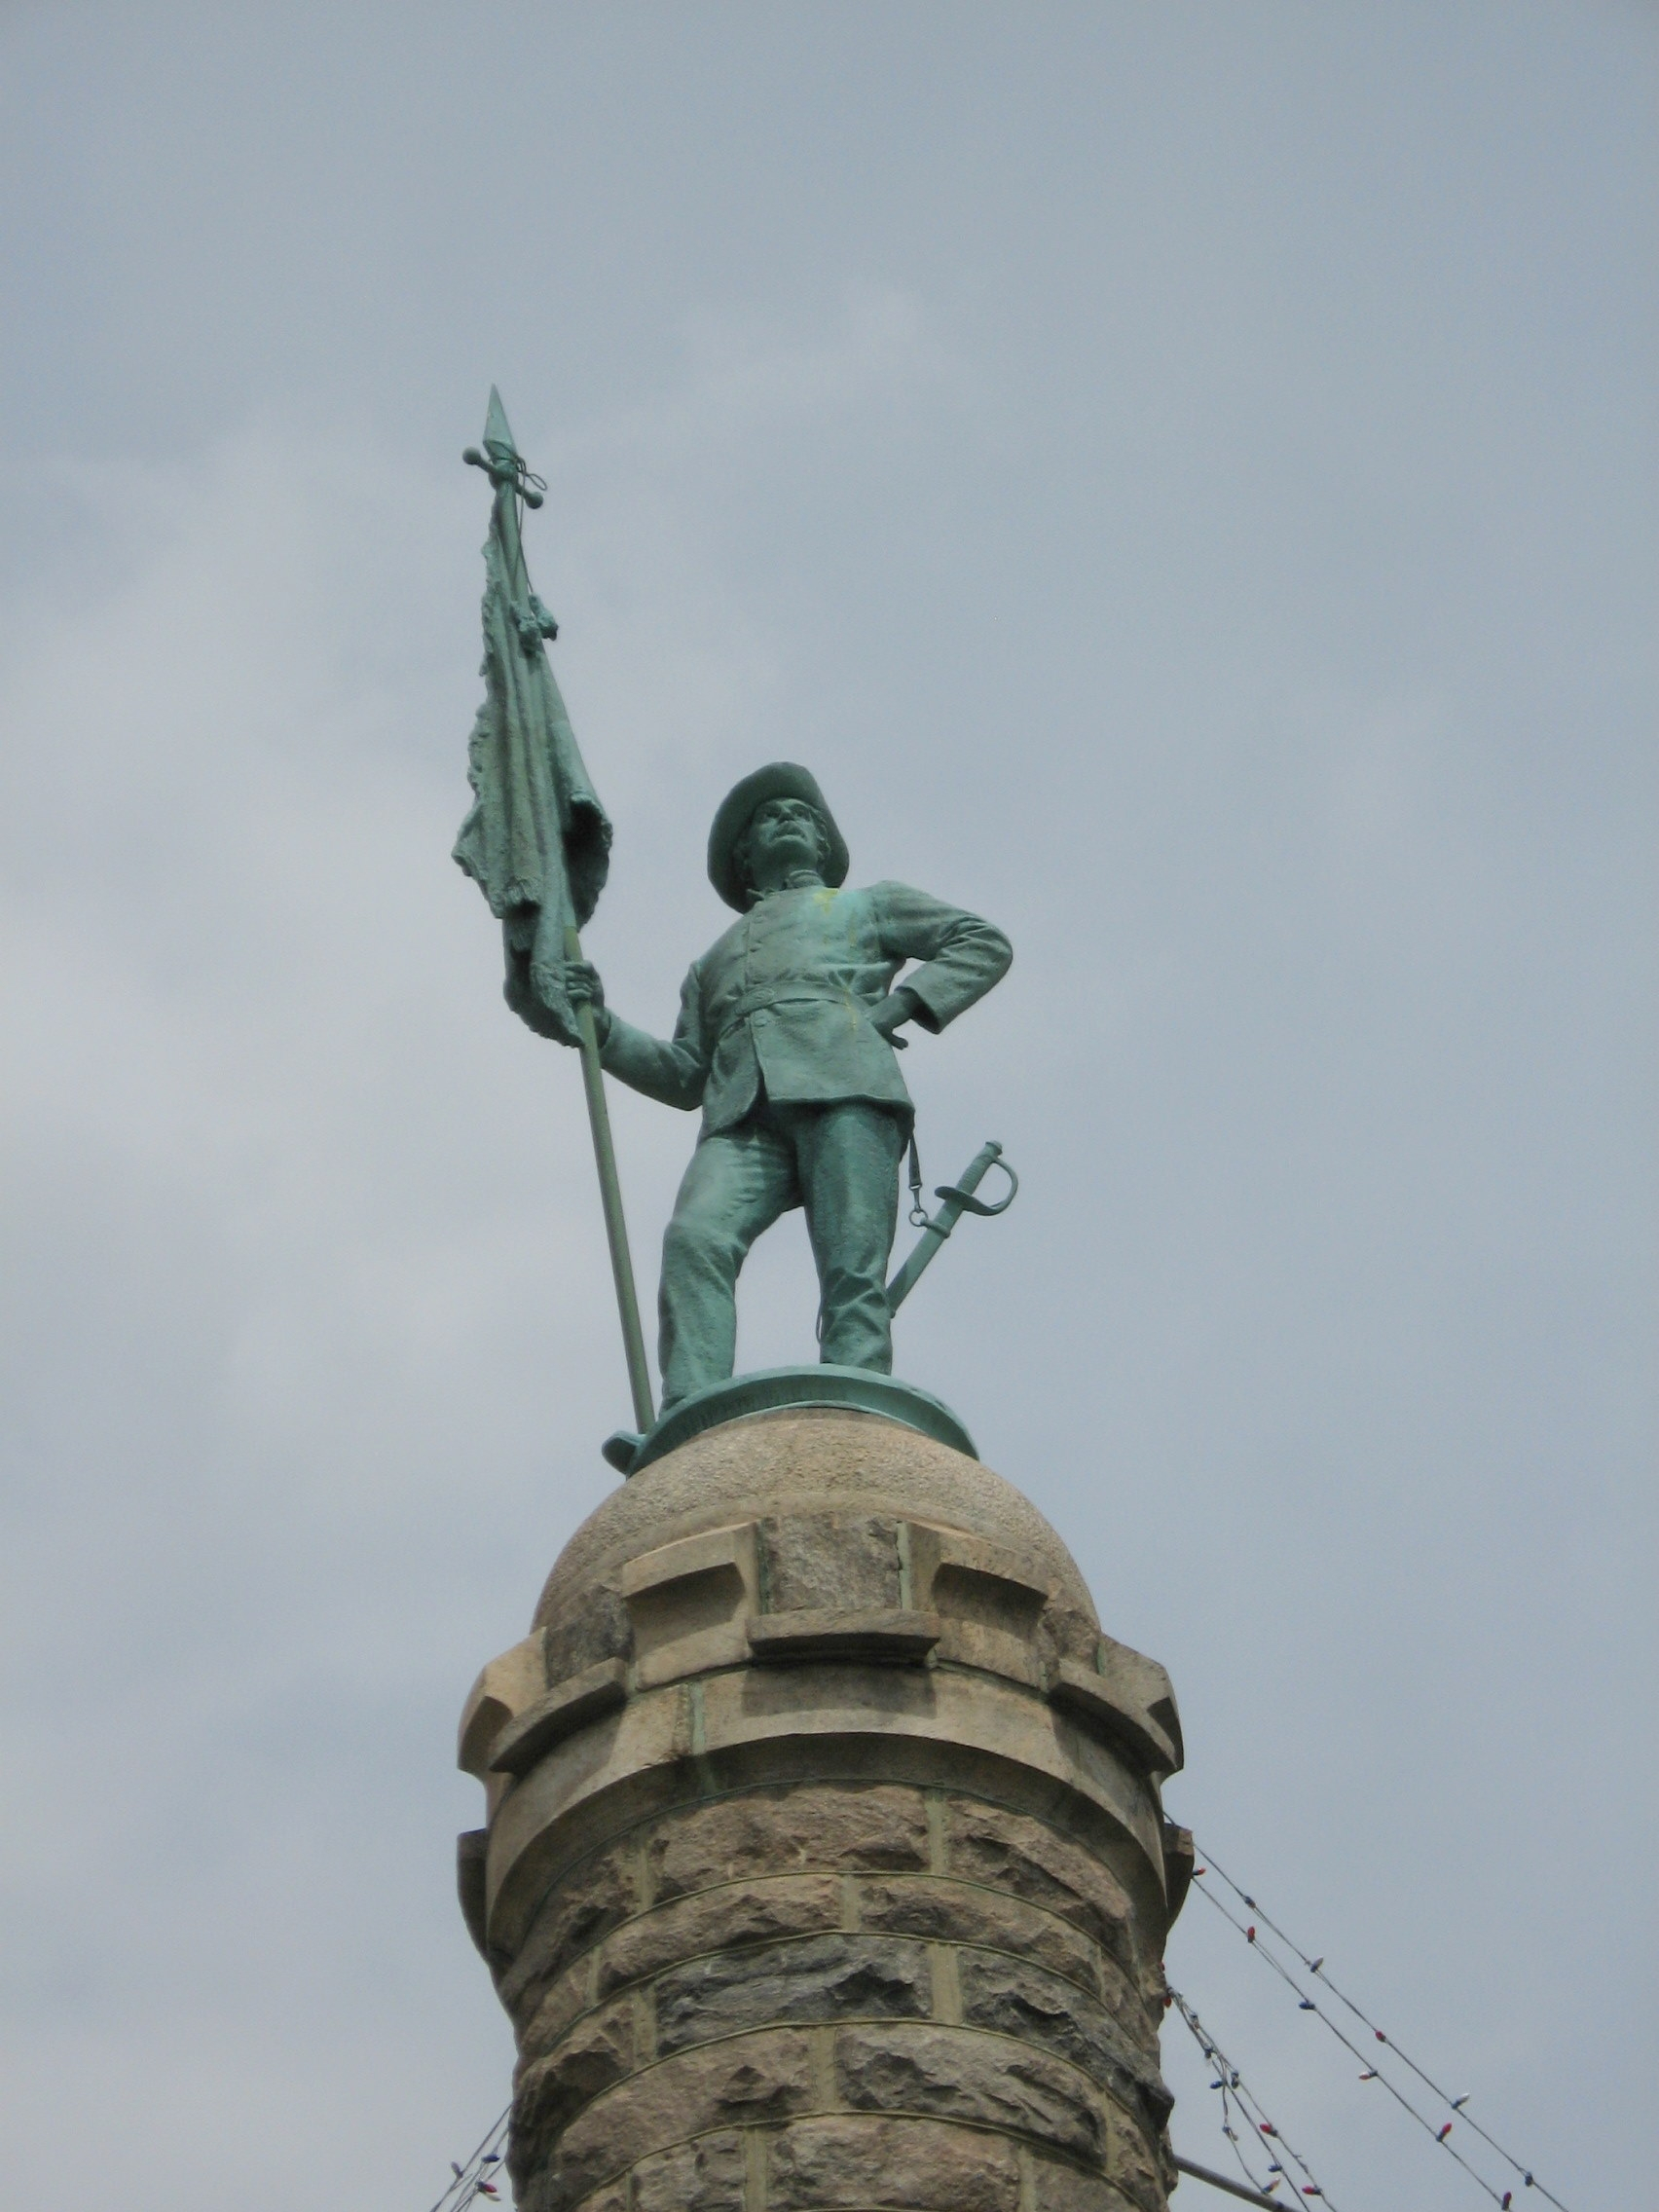 Statue at the Top